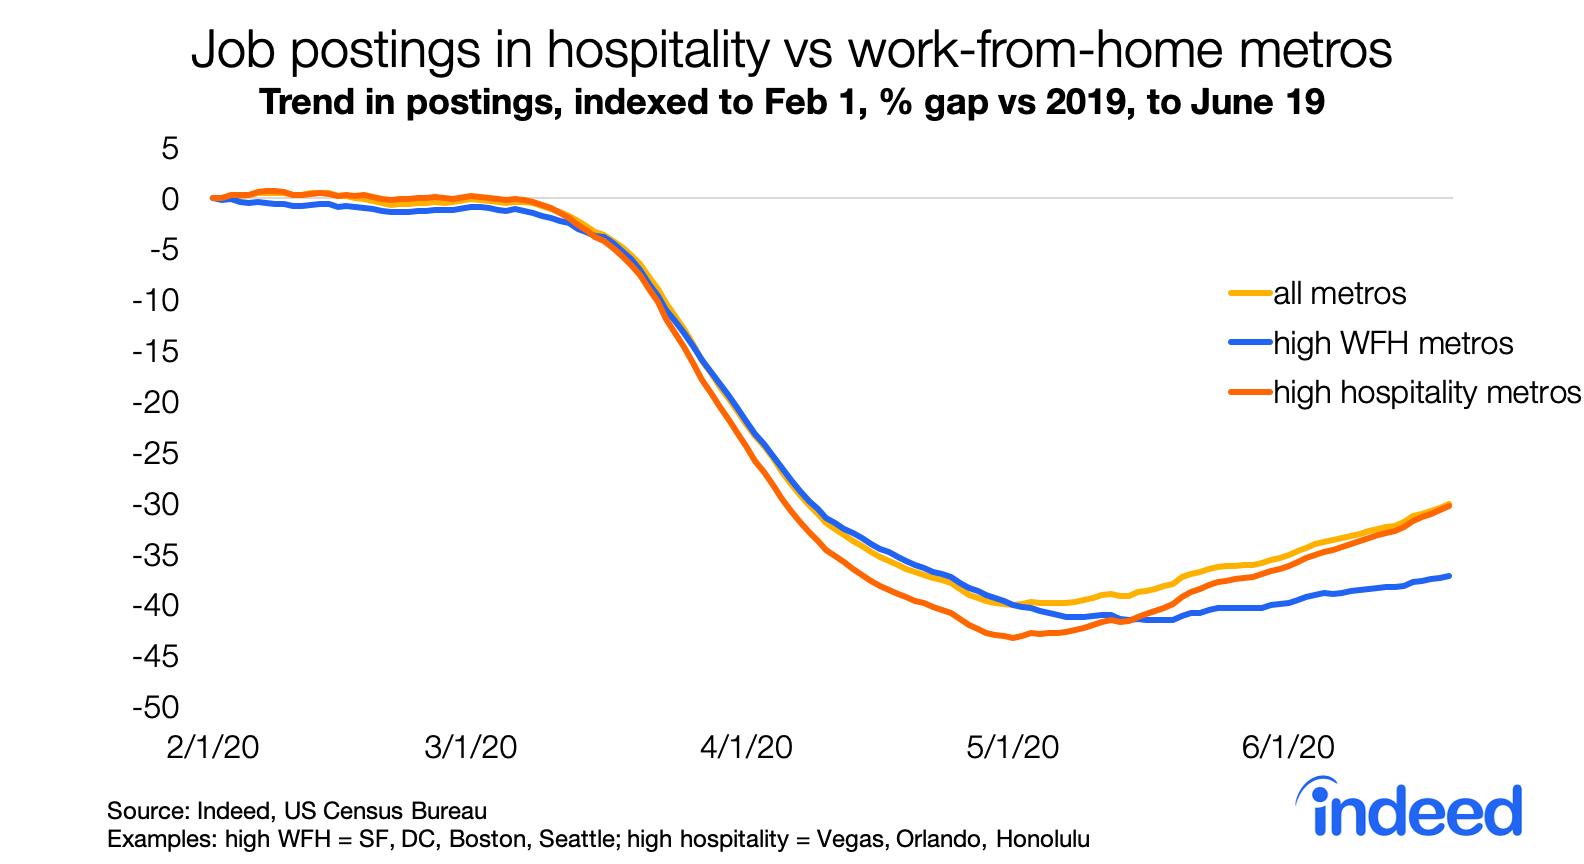 job postings in hospitality vs. work from home metros